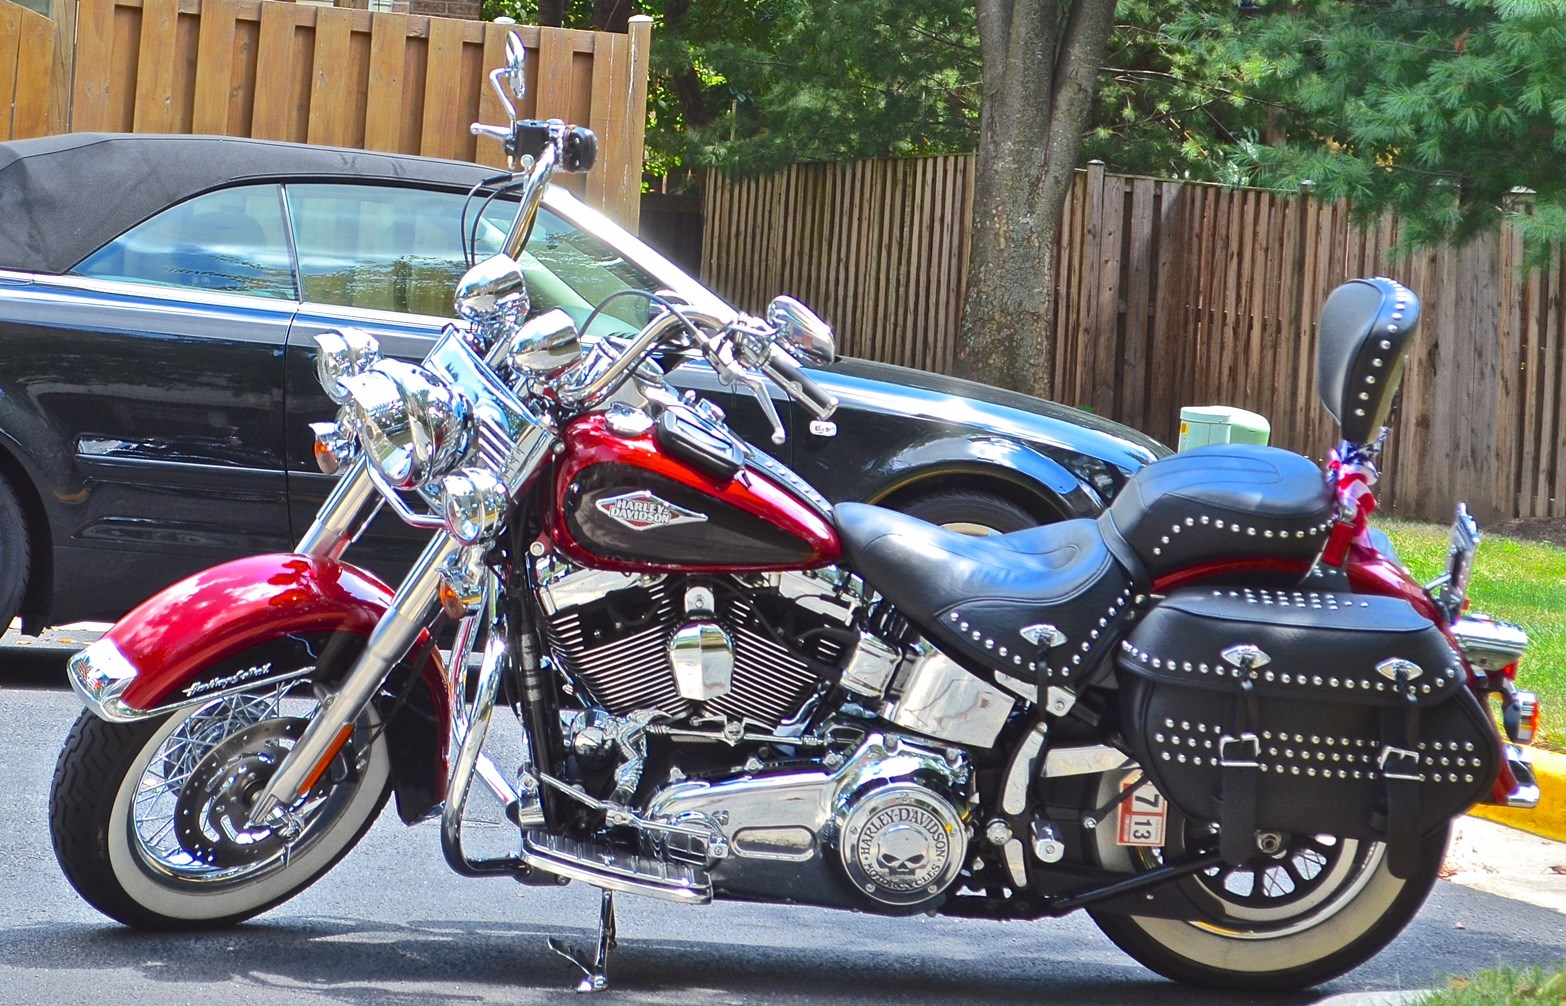 Softail Dealer Washington >> 2012 Harley-Davidson® FLSTC Heritage Softail® Classic (Merlot Sunglow), Washington , Distr. of ...